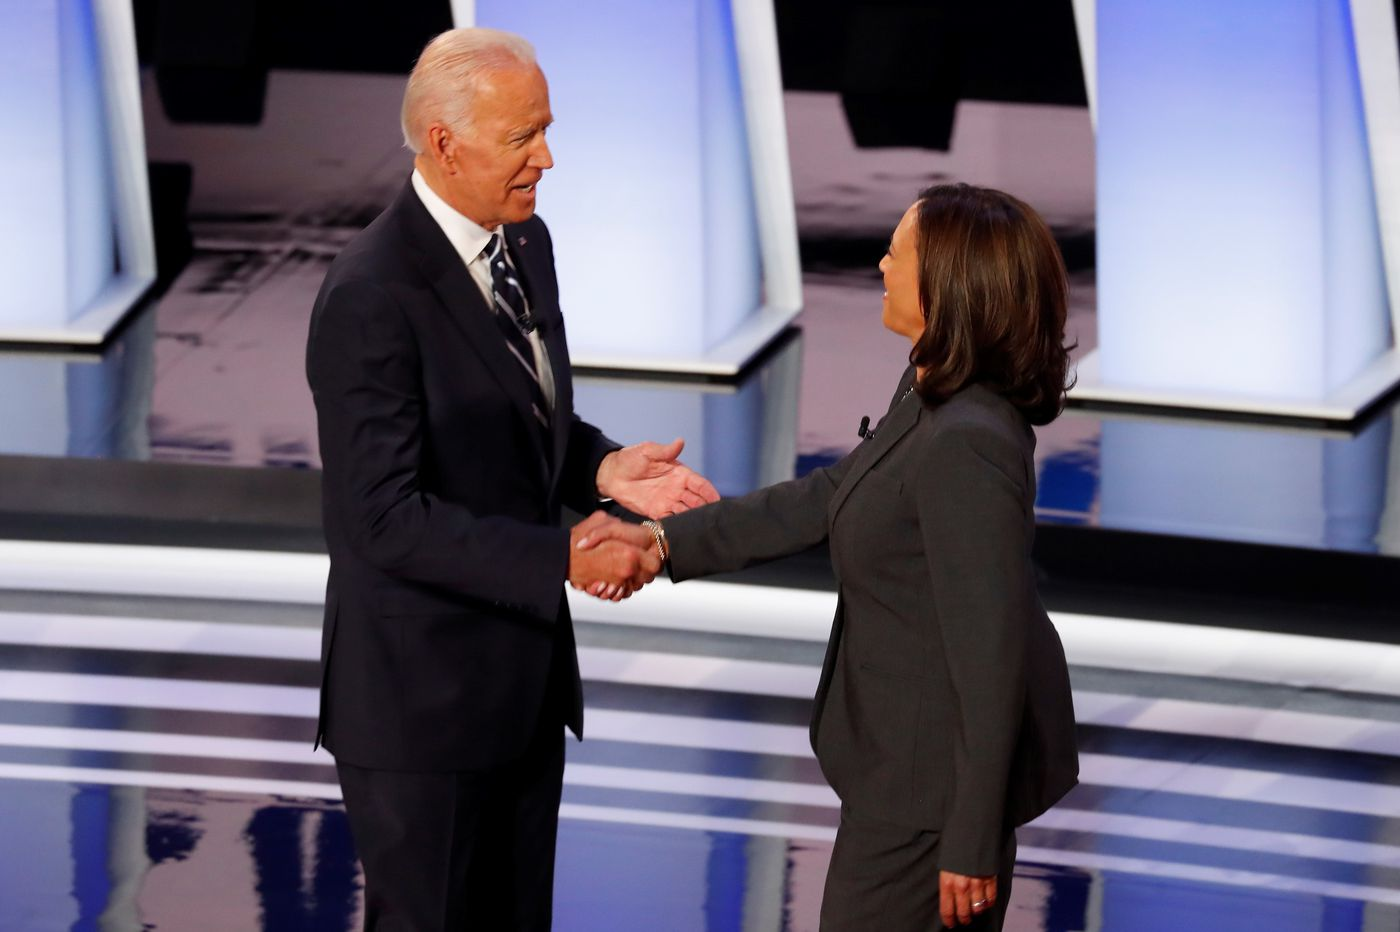 Joe Biden Picks Kamala Harris As His Vice President Candidate